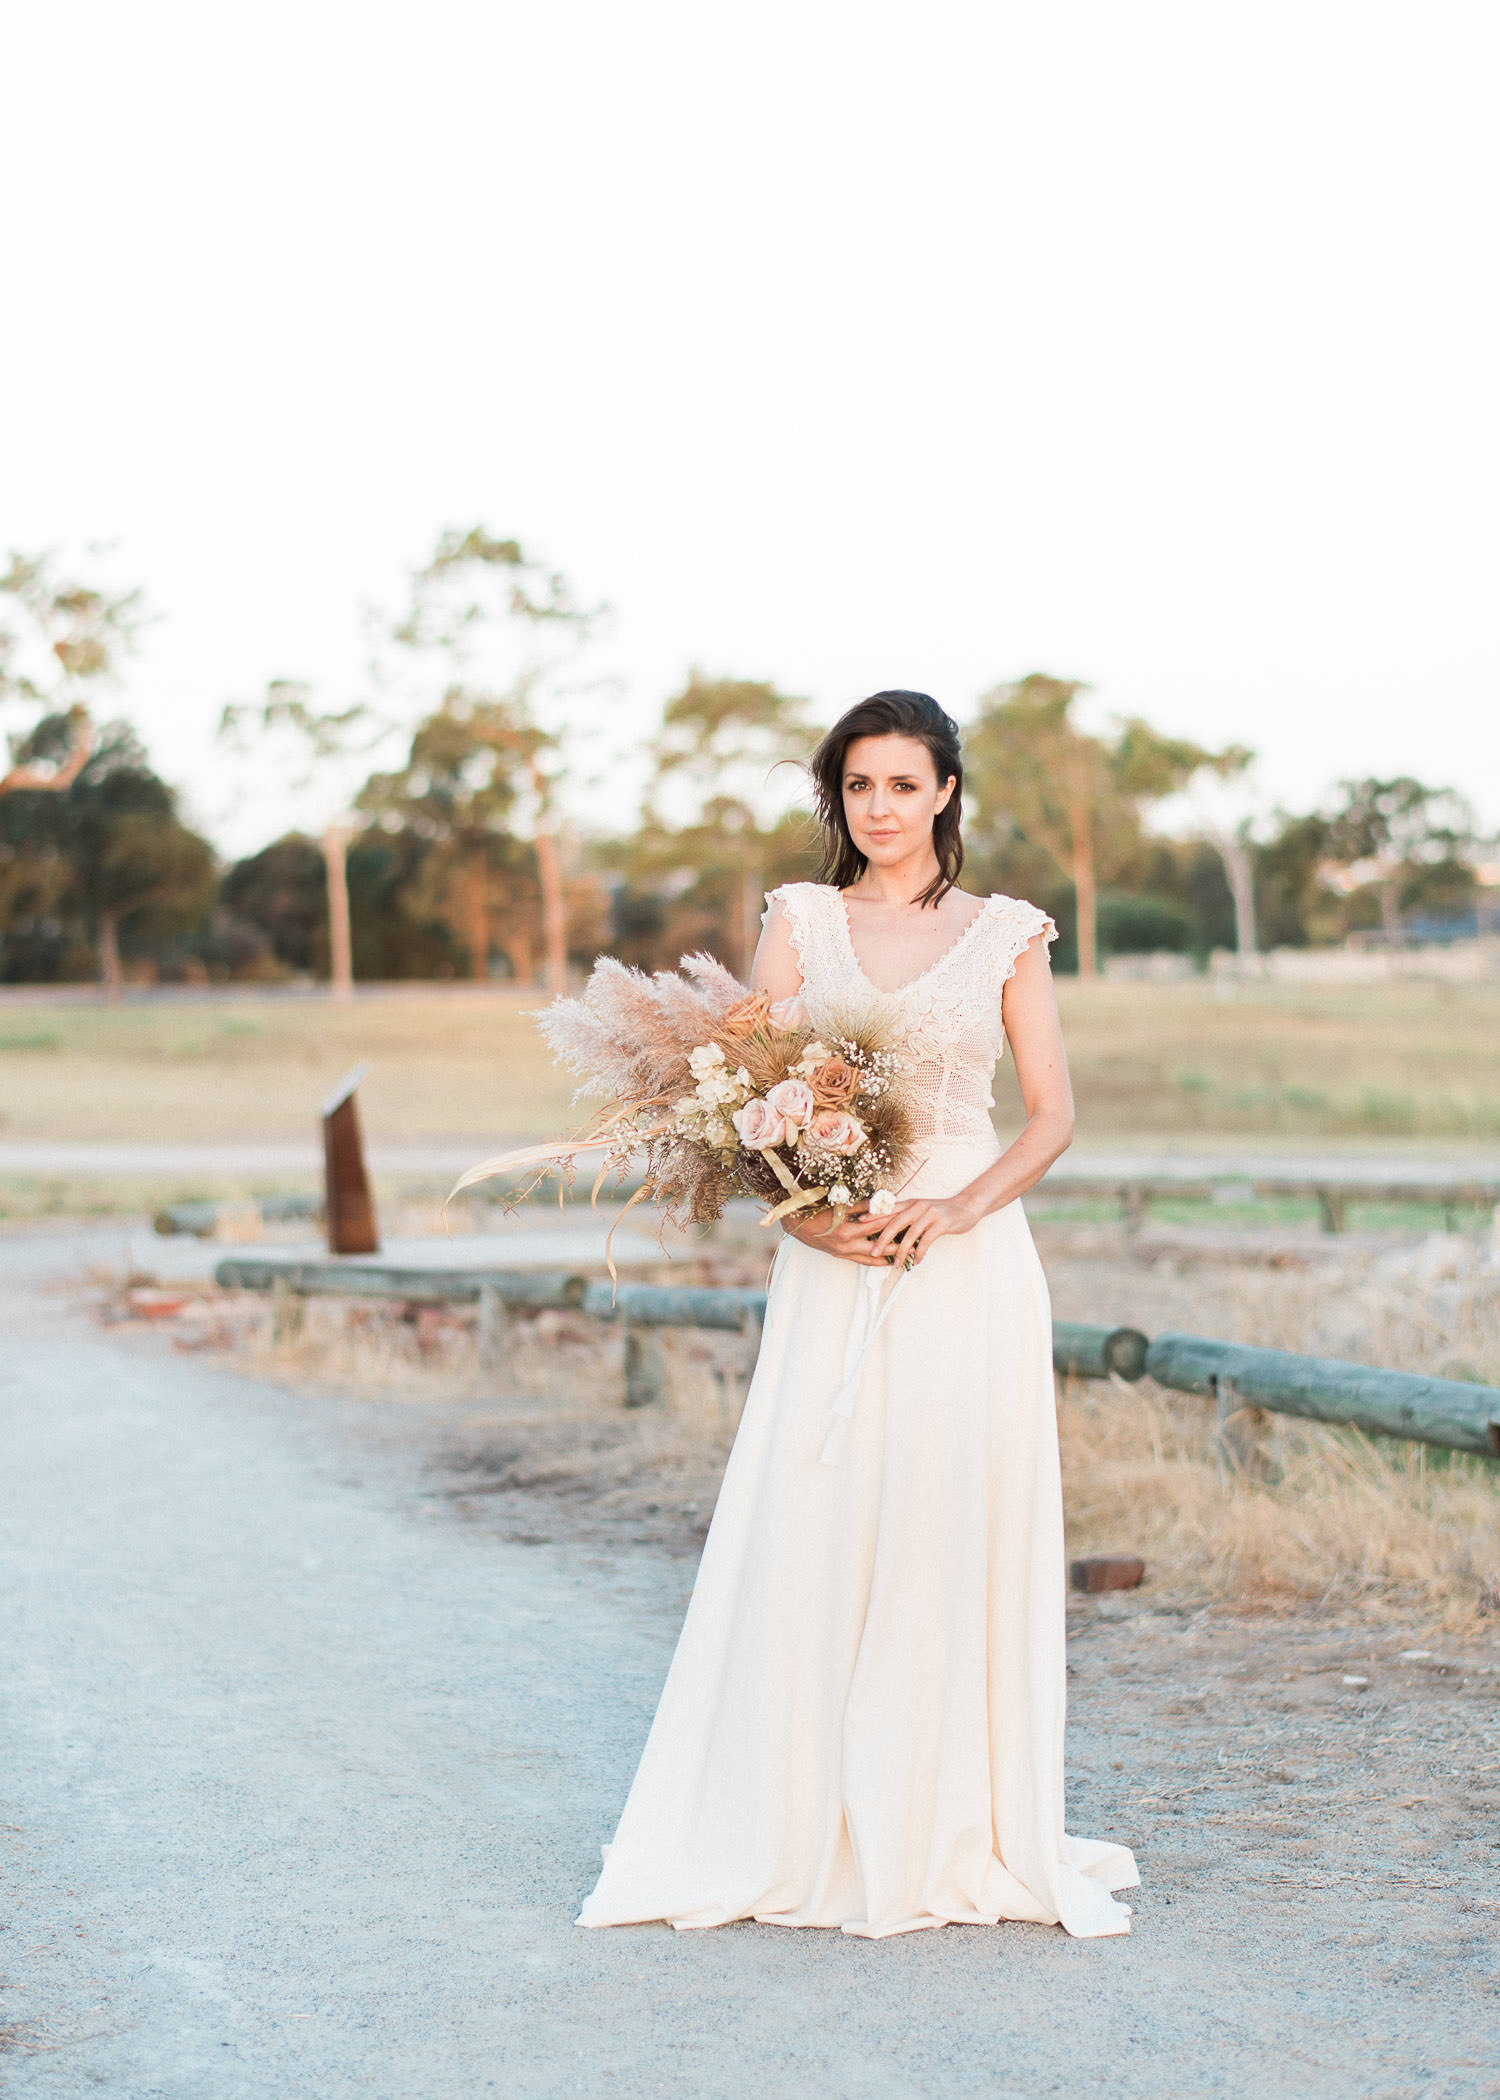 Beautiful bride portrait during sunset wedding in Perth at Perry's Paddock